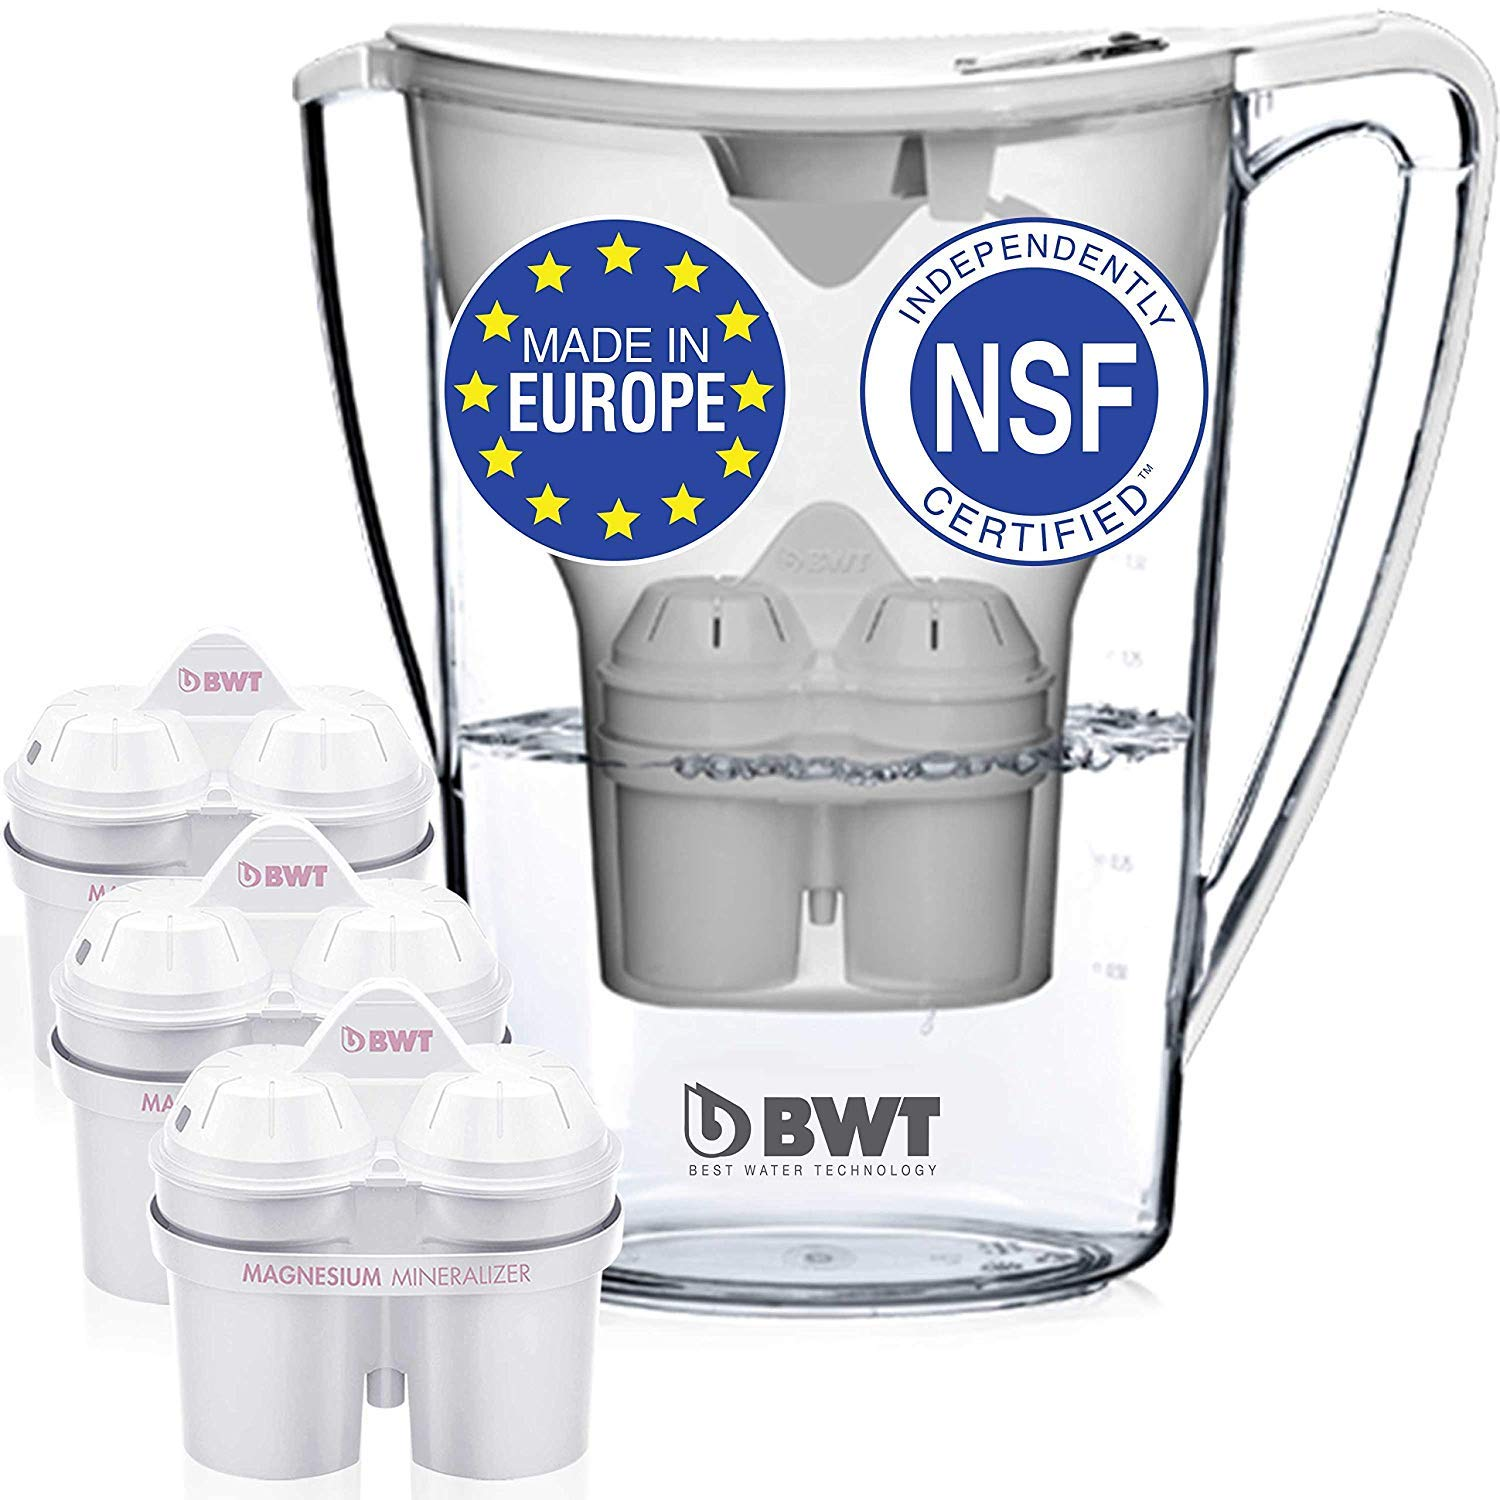 BWT Premium Water Filter Pitcher & 3 Filters, Award Winning Austrian Quality, Technology For Superior Filtration & Taste by BWT Designer Austrian Quality Water Filter Pitcher